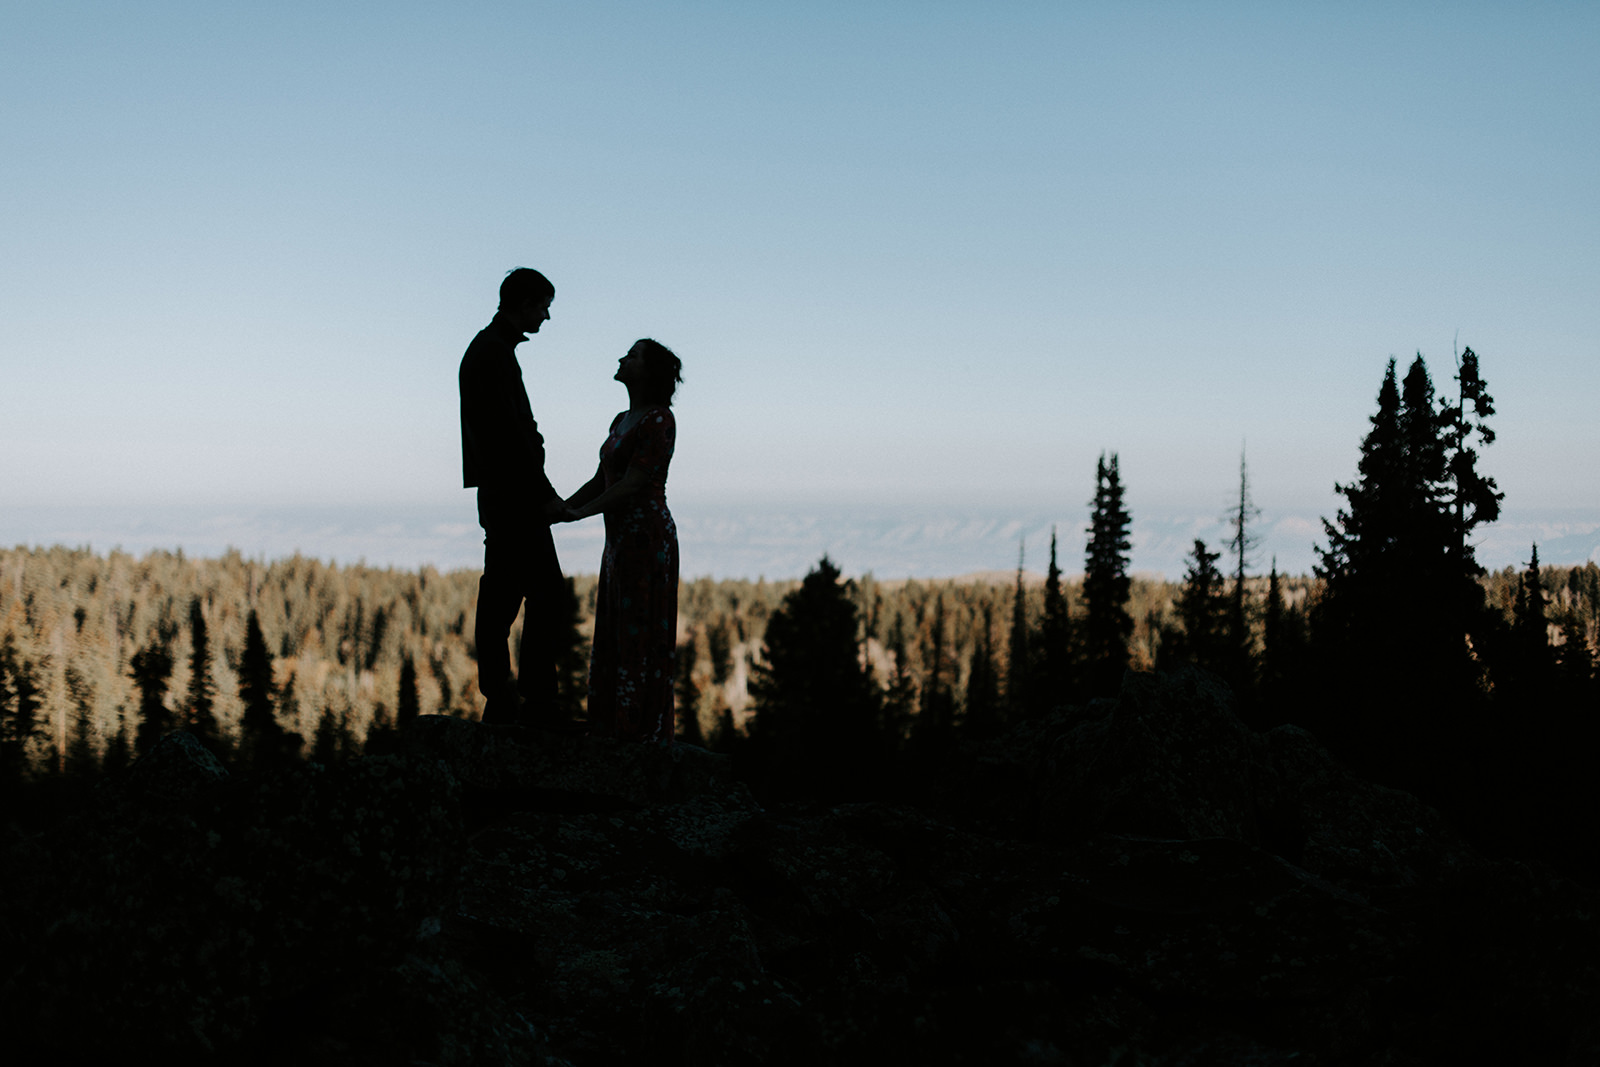 Silhouette of engaged couple with pine trees and sky in the background on Grand Mesa